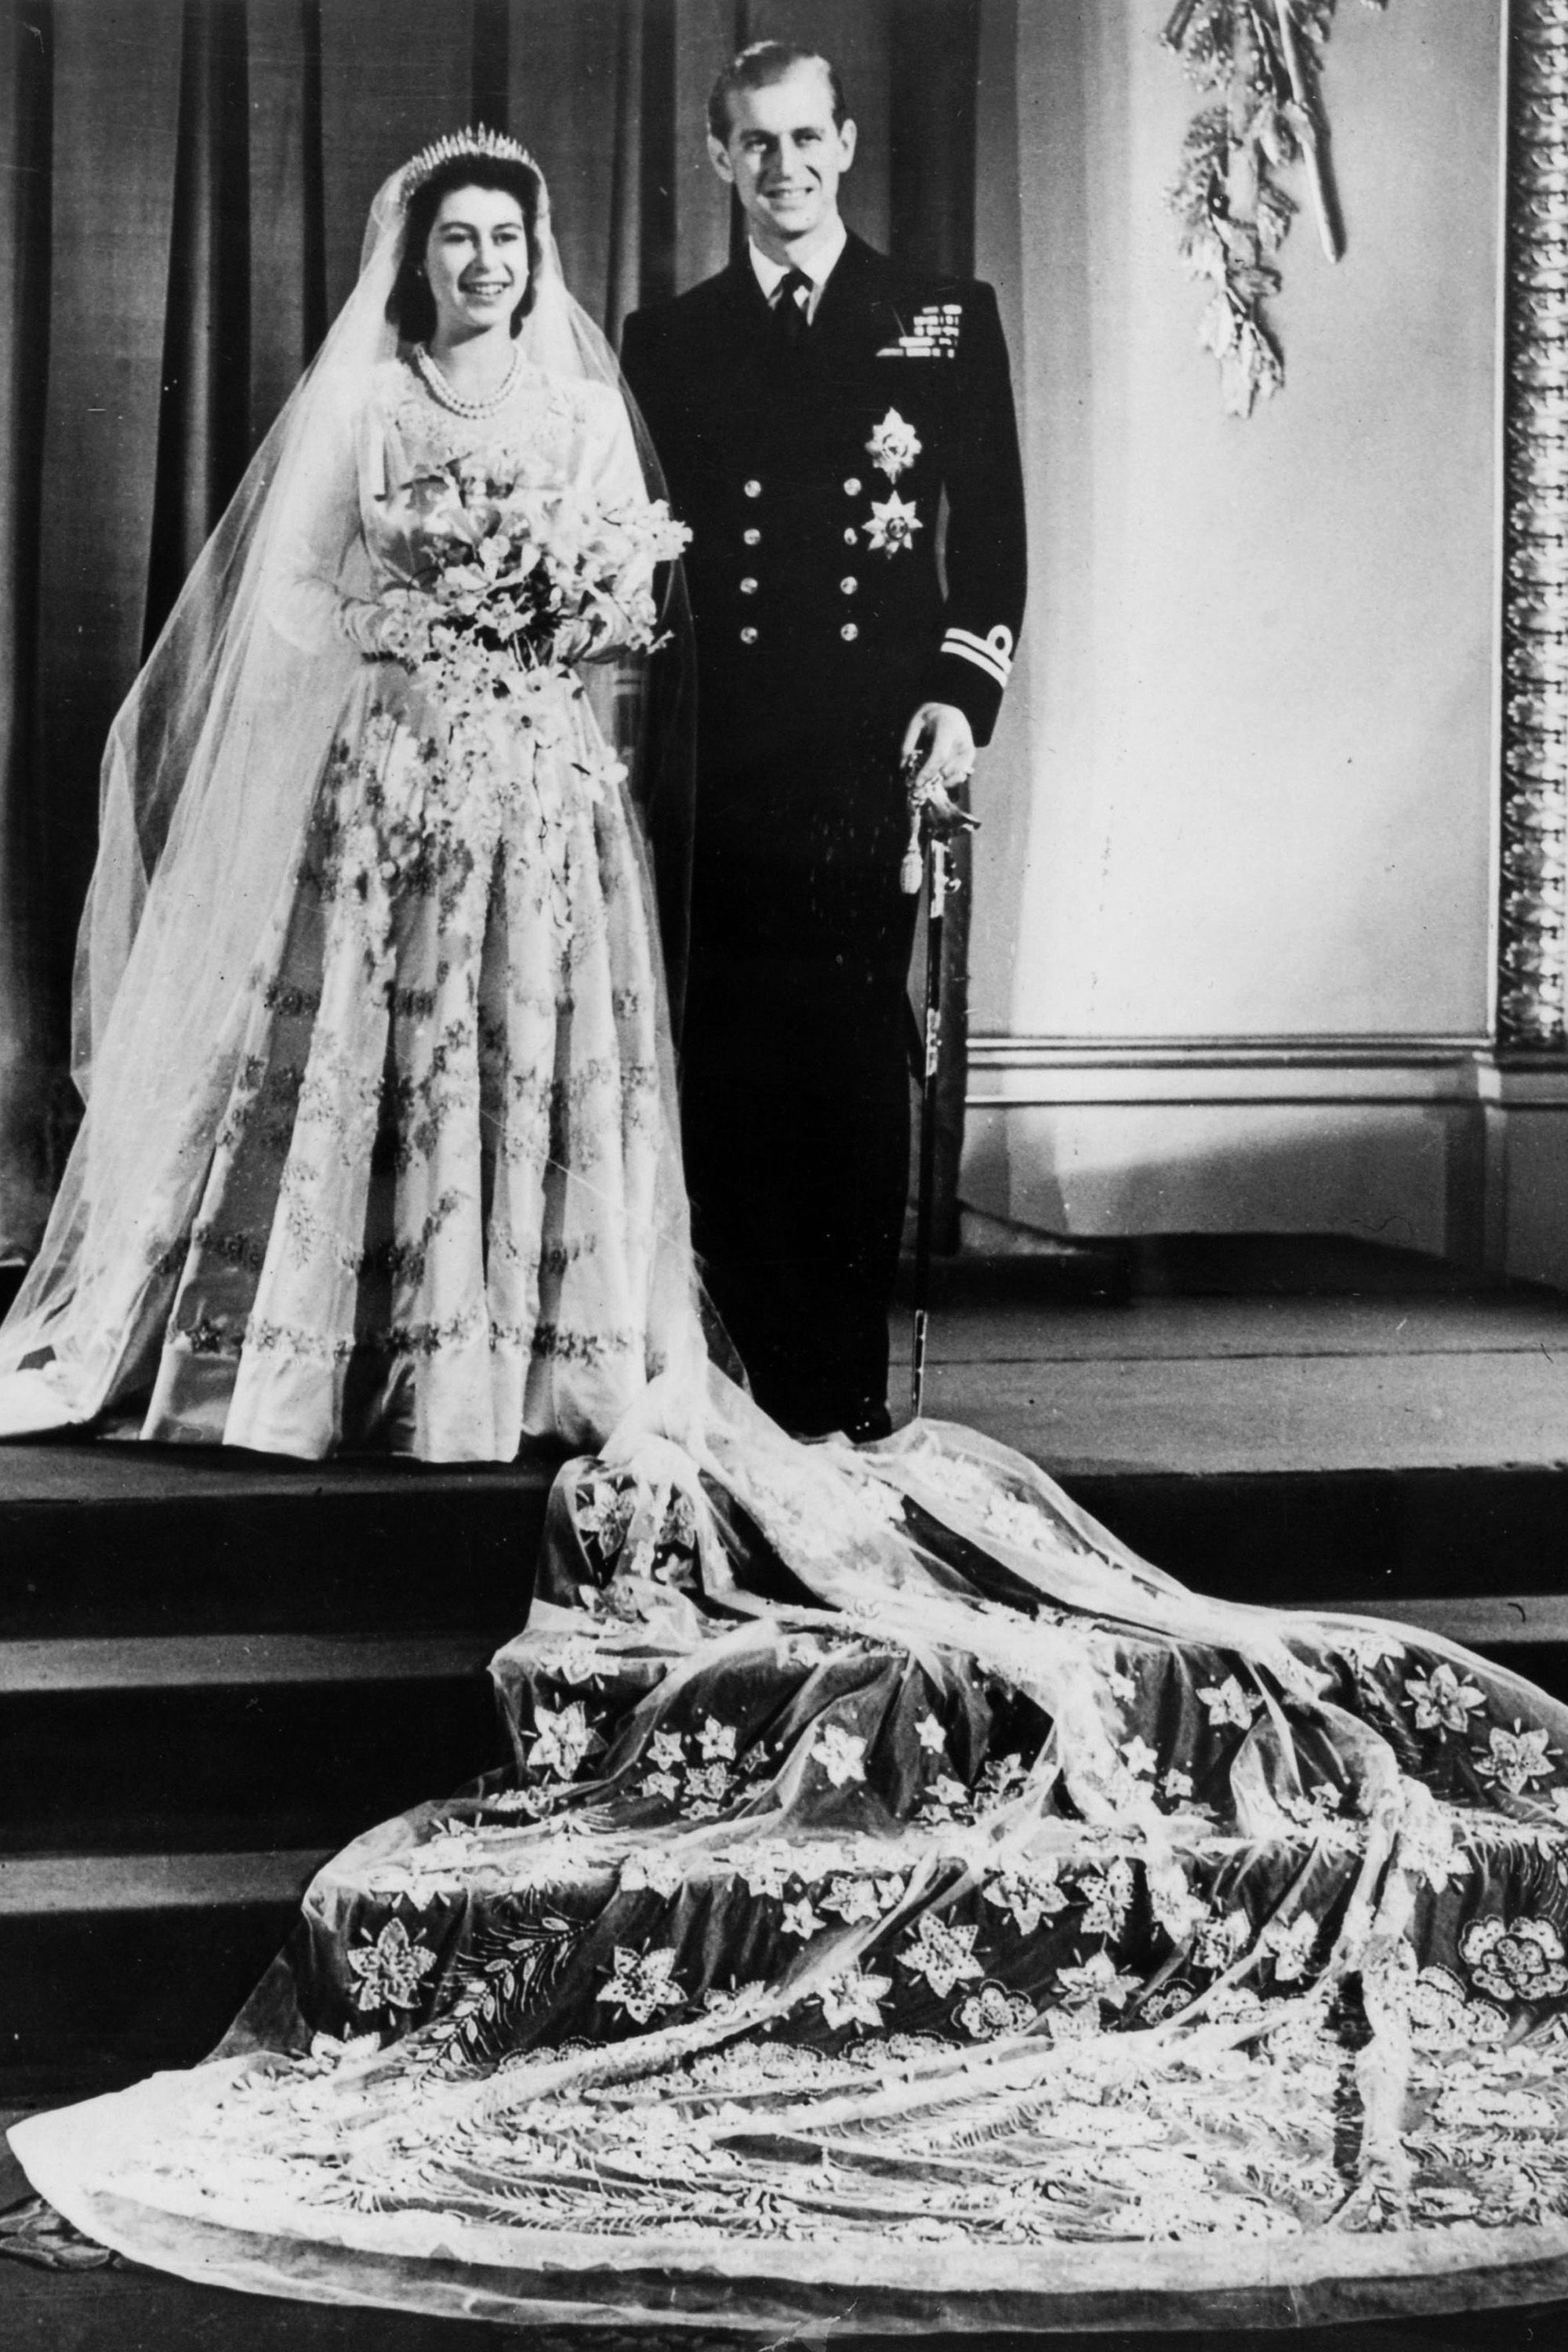 65 Photos of the British Royal Family - The History of the British ...